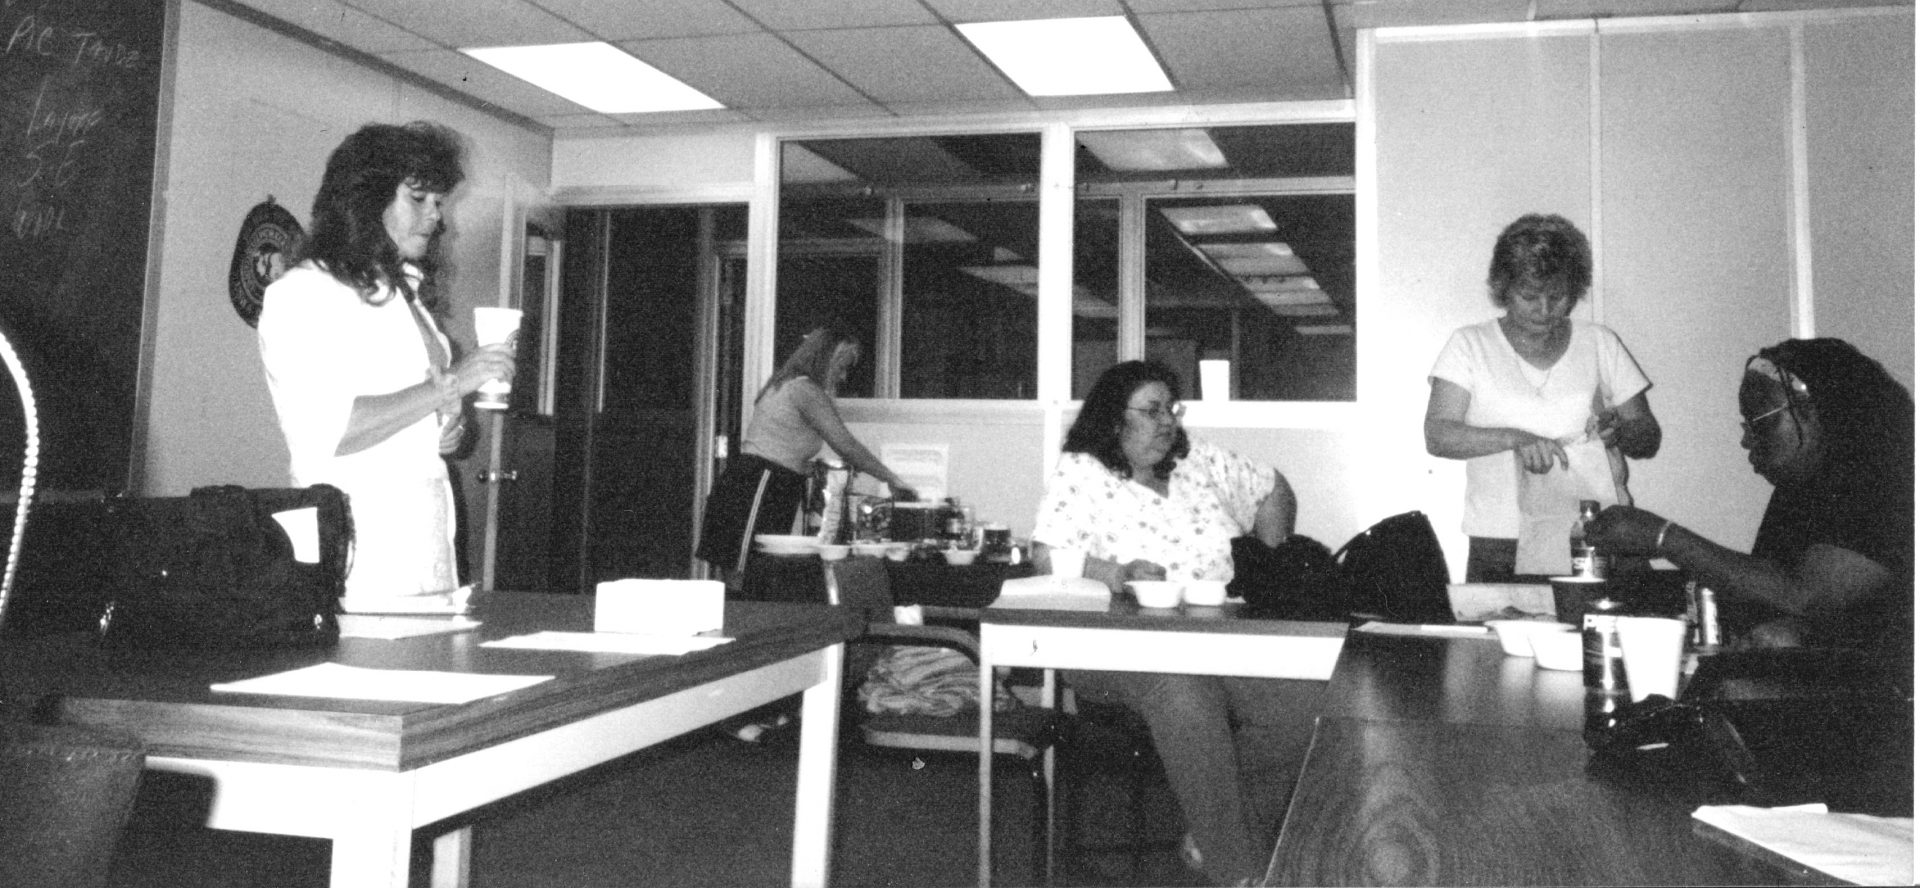 A black and white photo shows five women meeting to discuss union issues.